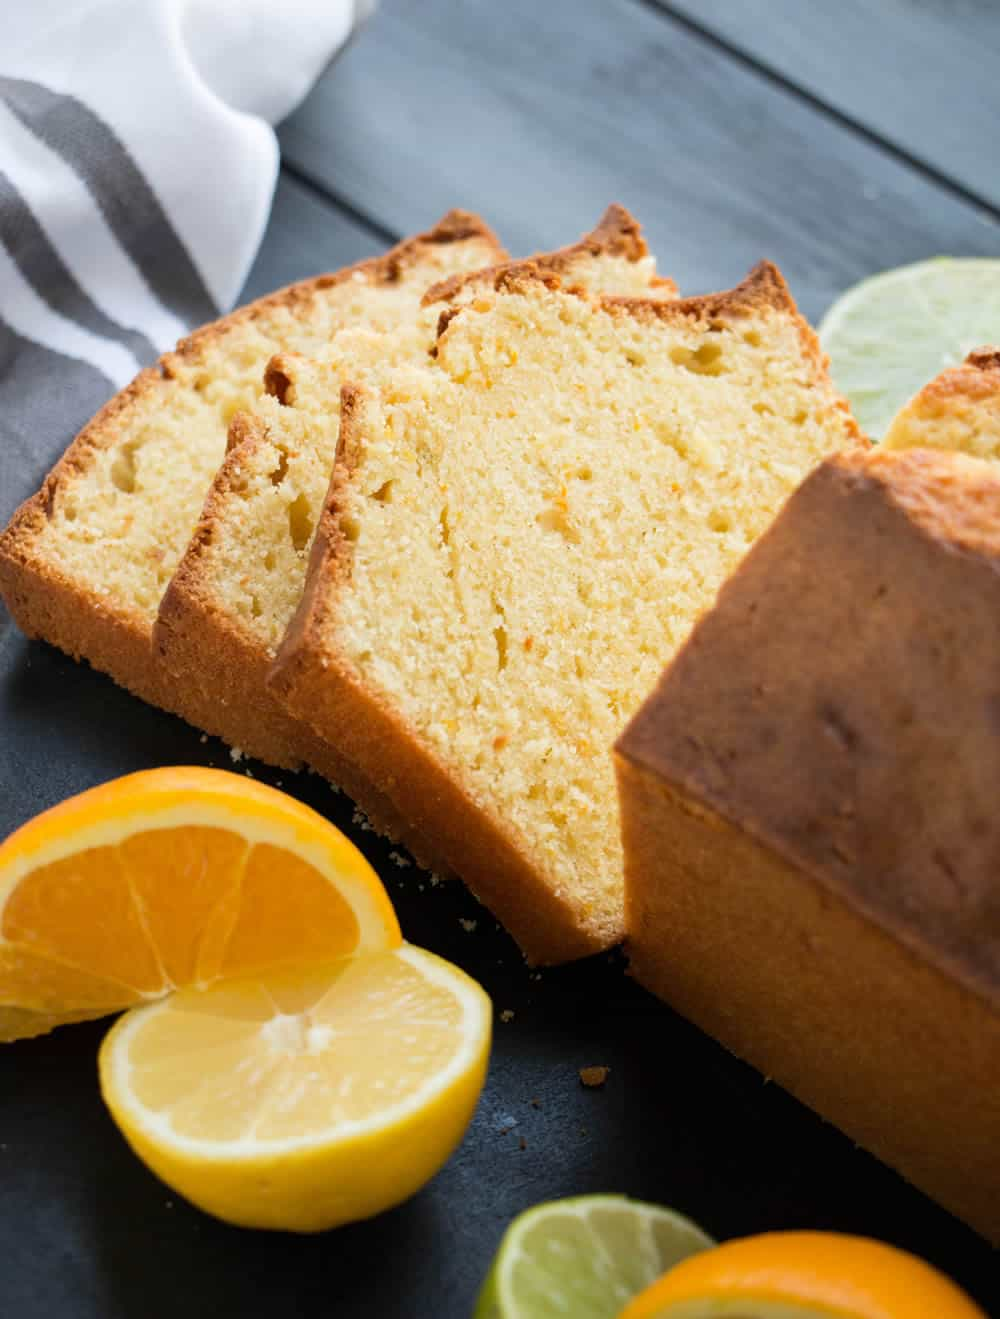 Triple Citrus Pound Cake. Fresh orange, lemon and lime brighten this cake. Sour cream provides richness. Delicious plain or as a base for other desserts.